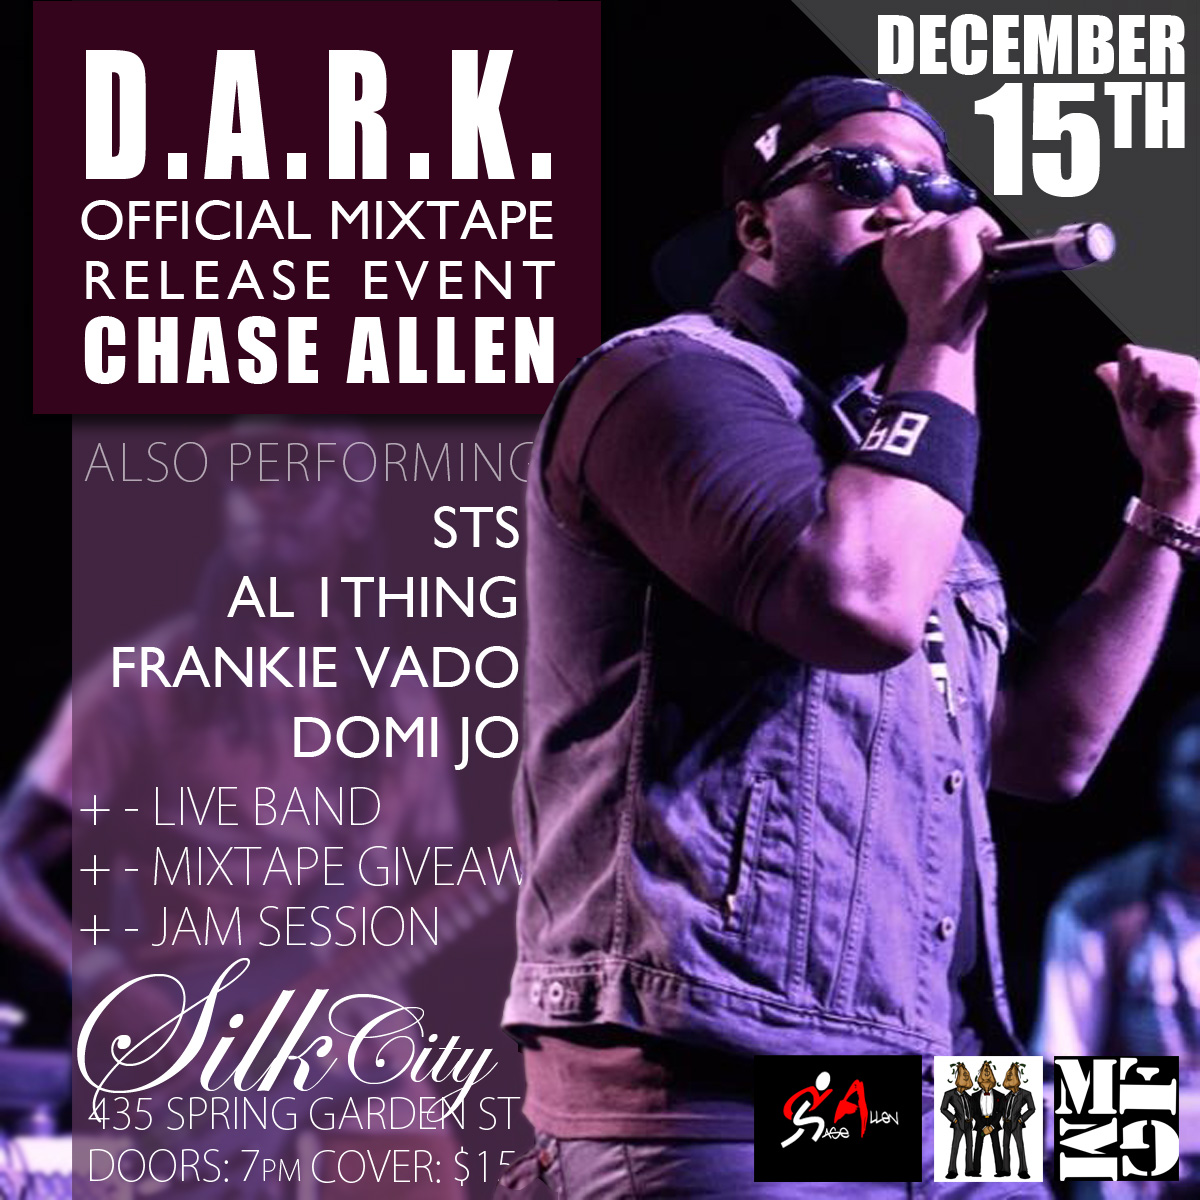 DARK Chase Allen   D.A.R.K. Mixtape Release Event (12/15/13) Ft. Live Band, Jam Session, Giveaways & more